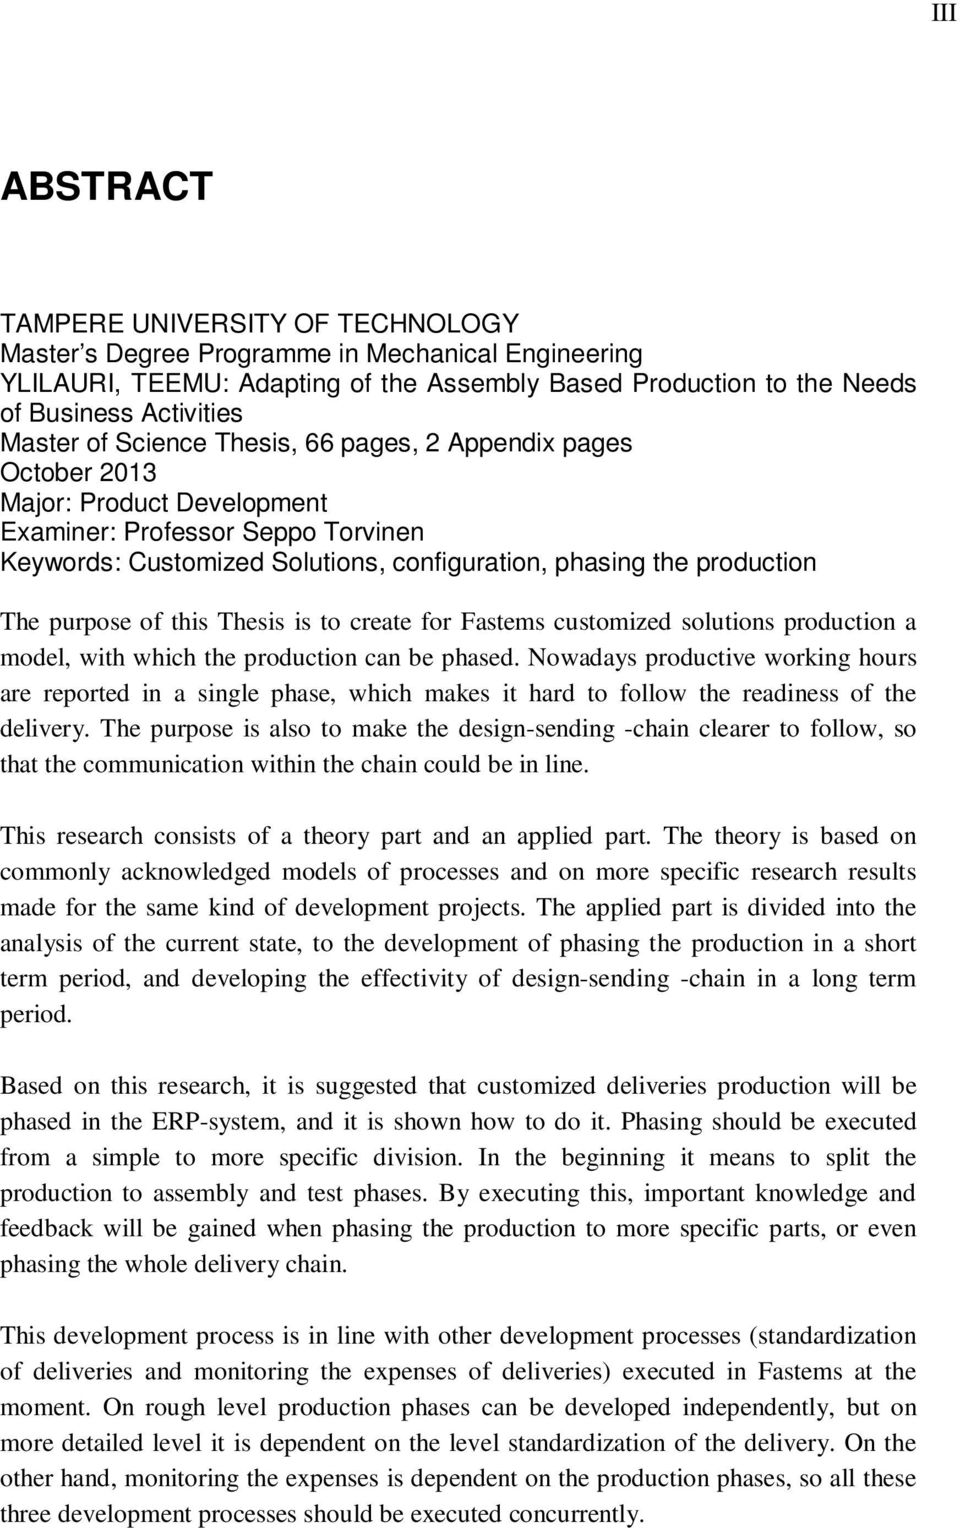 purpose of this Thesis is to create for Fastems customized solutions production a model, with which the production can be phased.